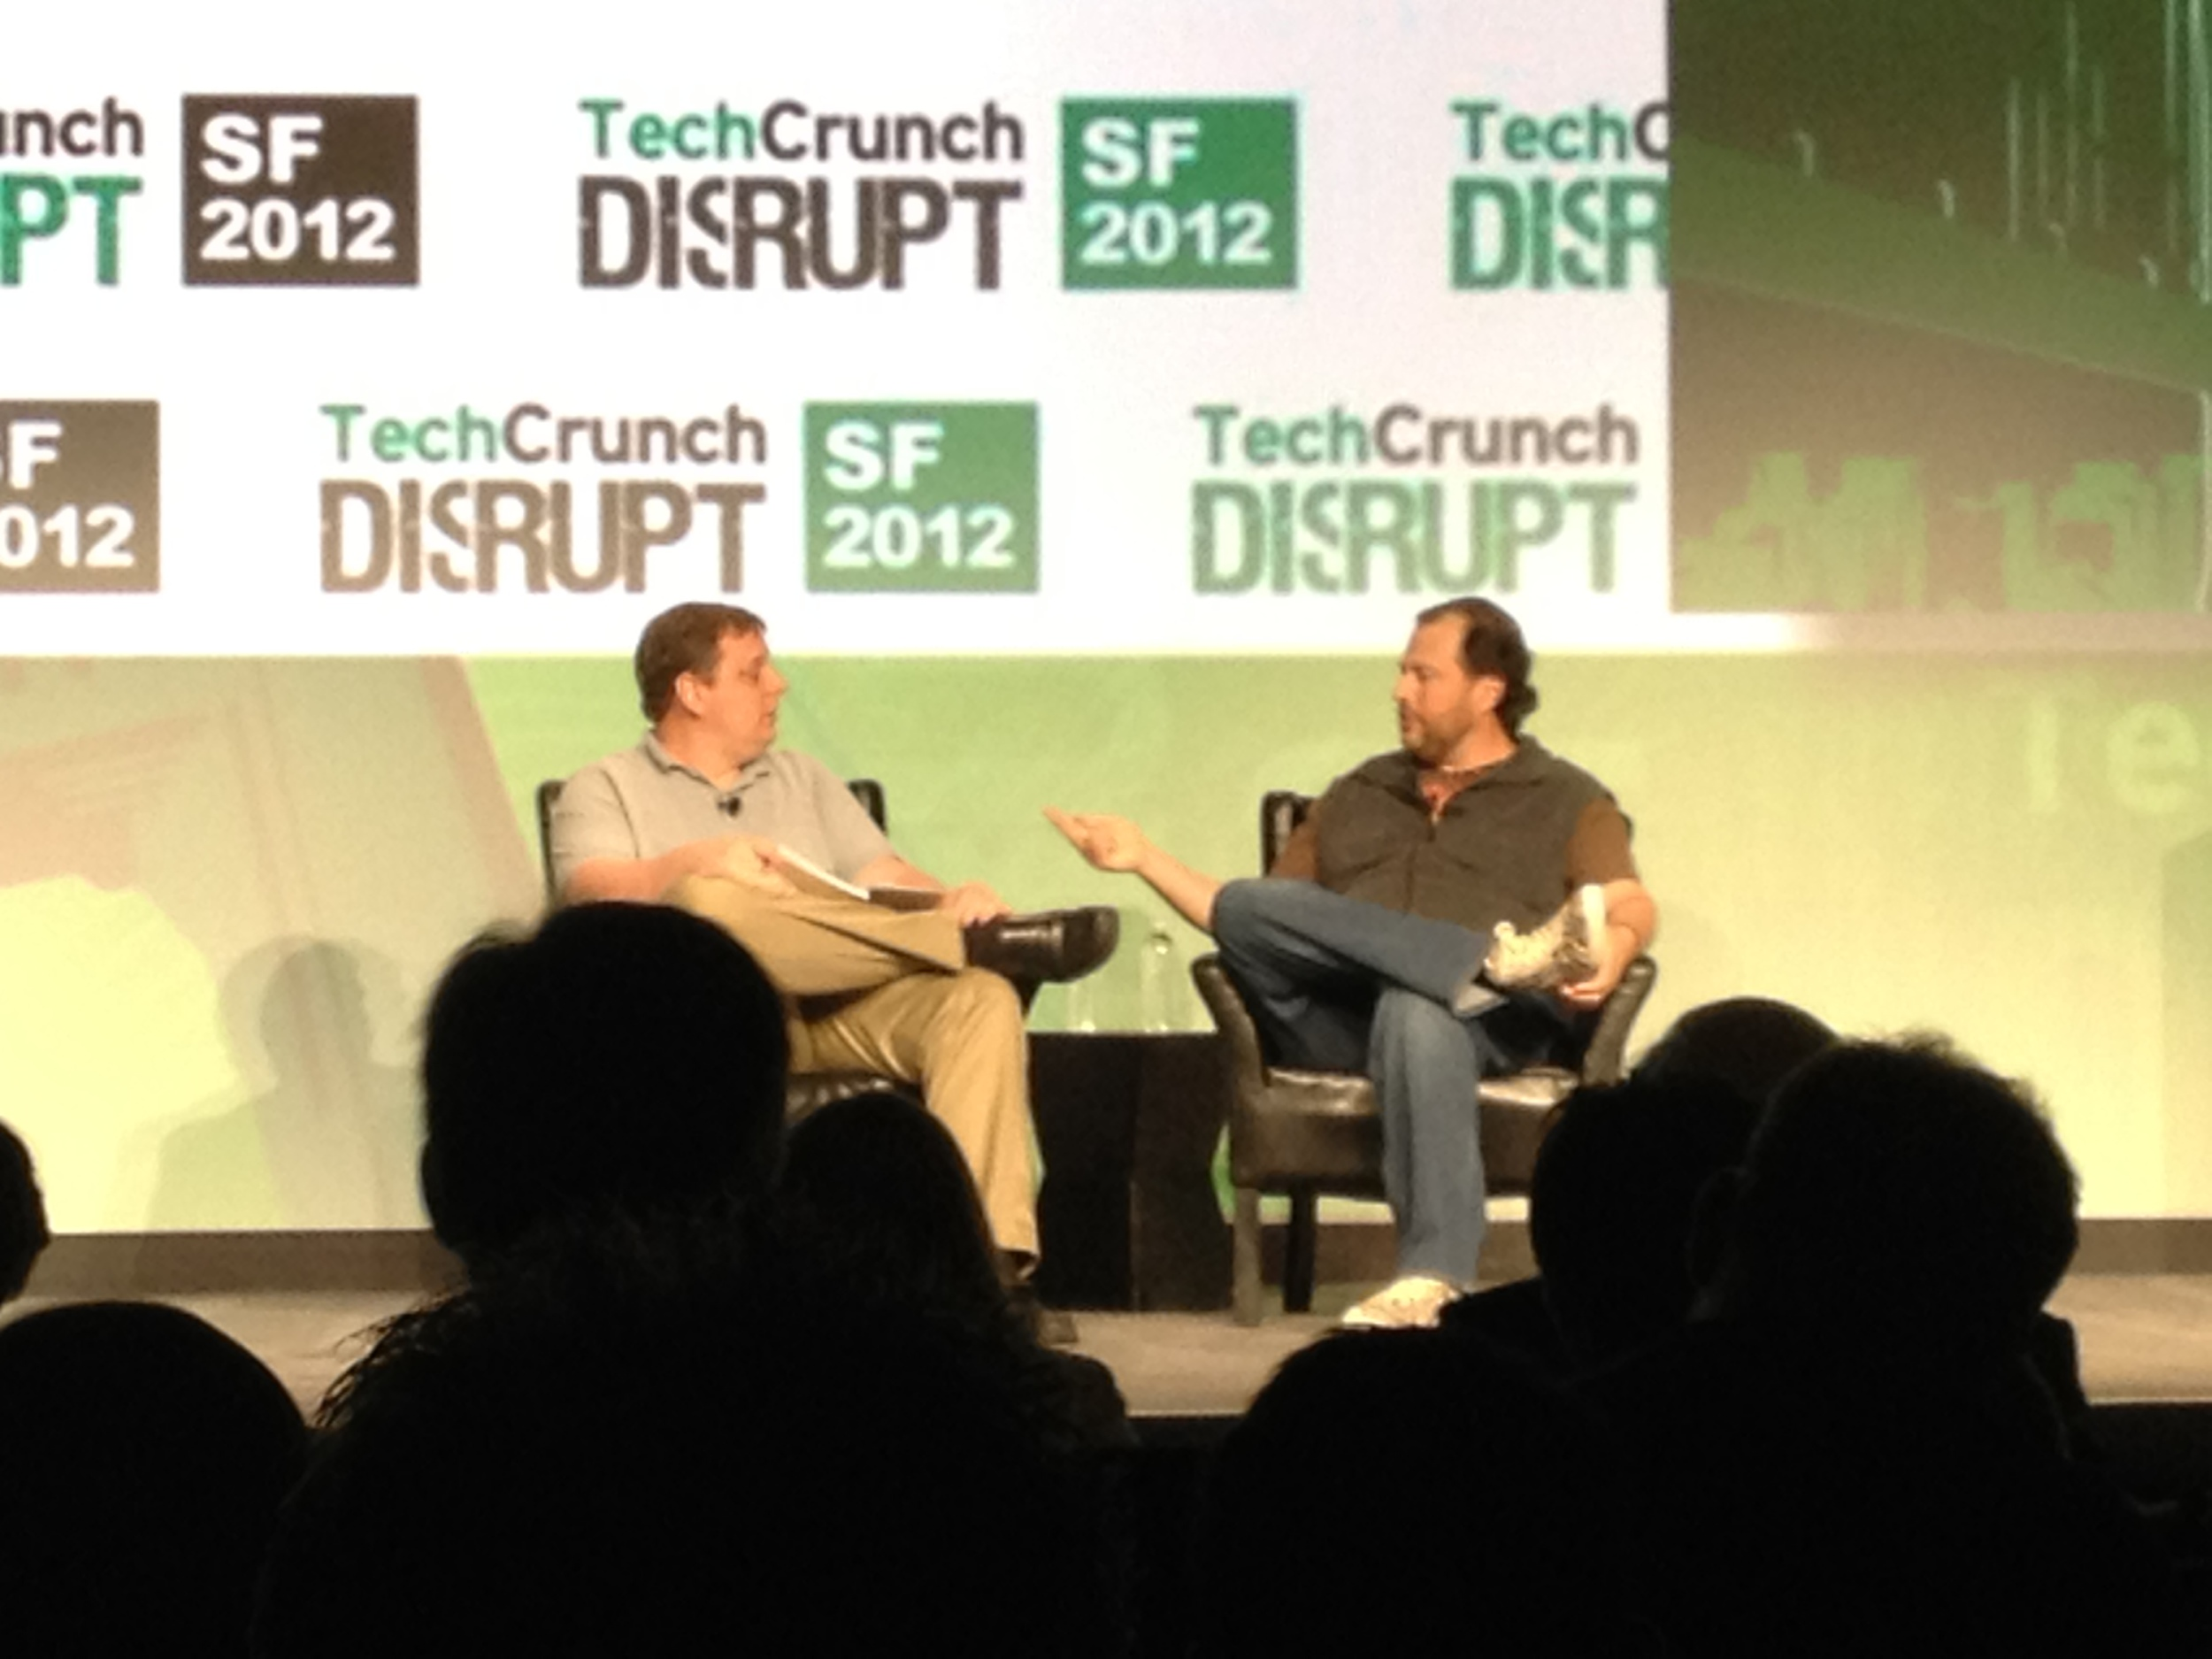 Michael Arrington (TechCrunch founder) interviewing Marc Benioff (Salesforce.com)